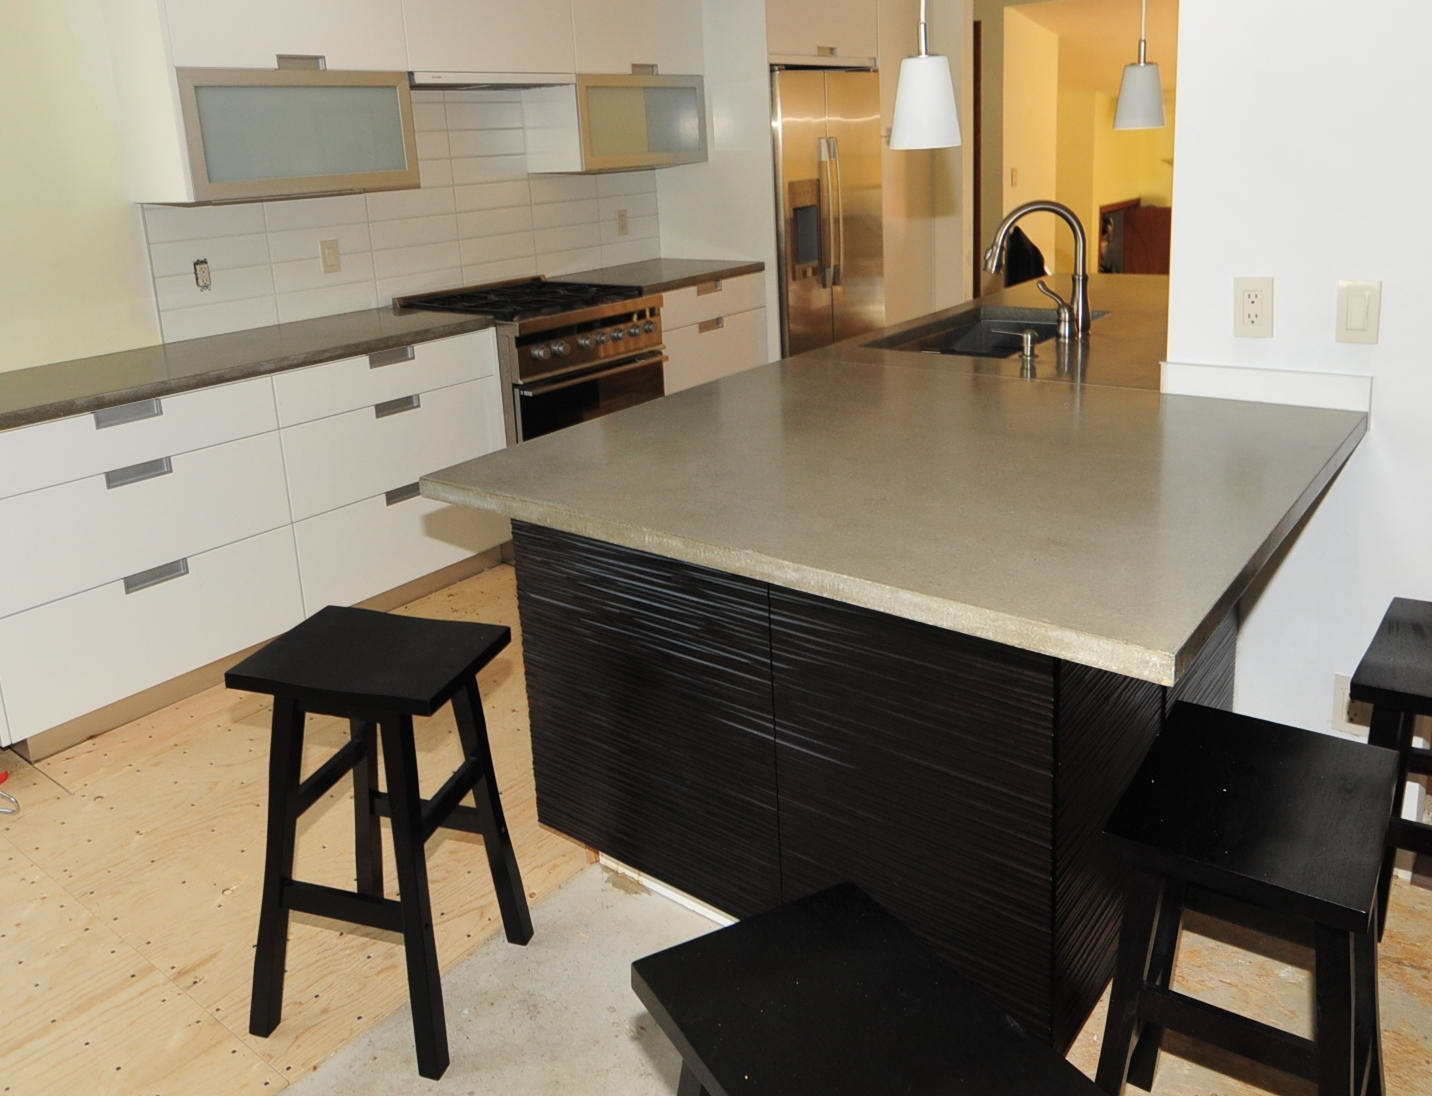 MODE CONCRETE: Ultra Chic and Modern Concrete Kitchen ... on Modern Kitchen Counter  id=57404